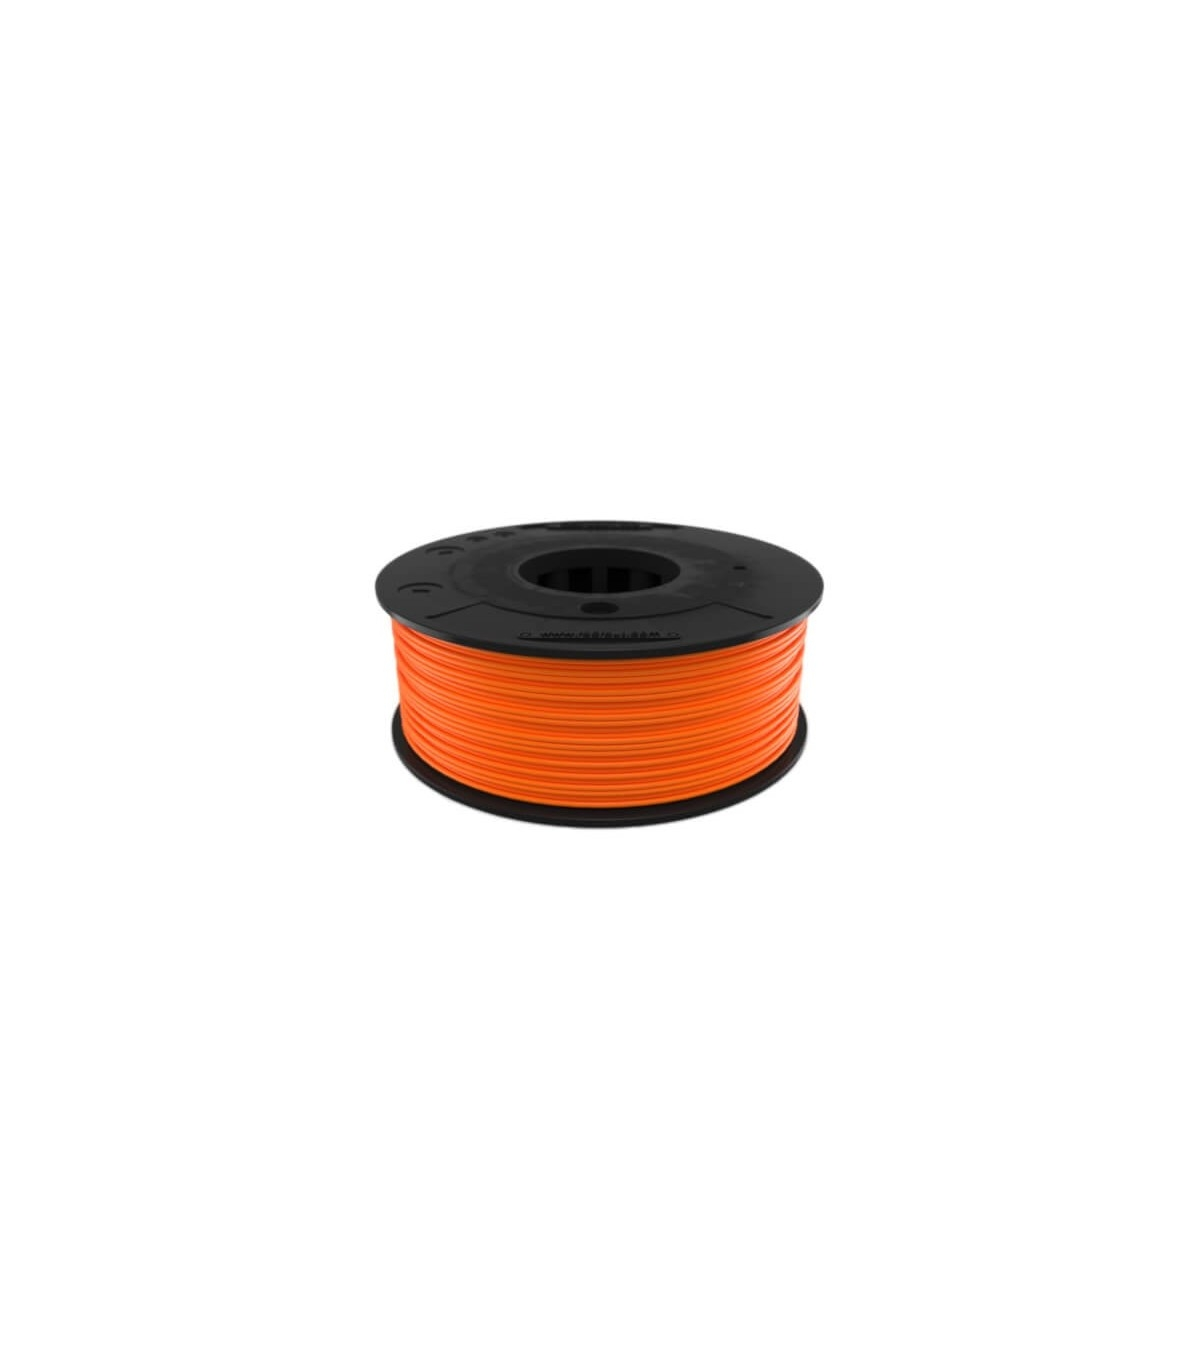 FilaFlex Orange 82A TPE Filament 1.75 mm 250g